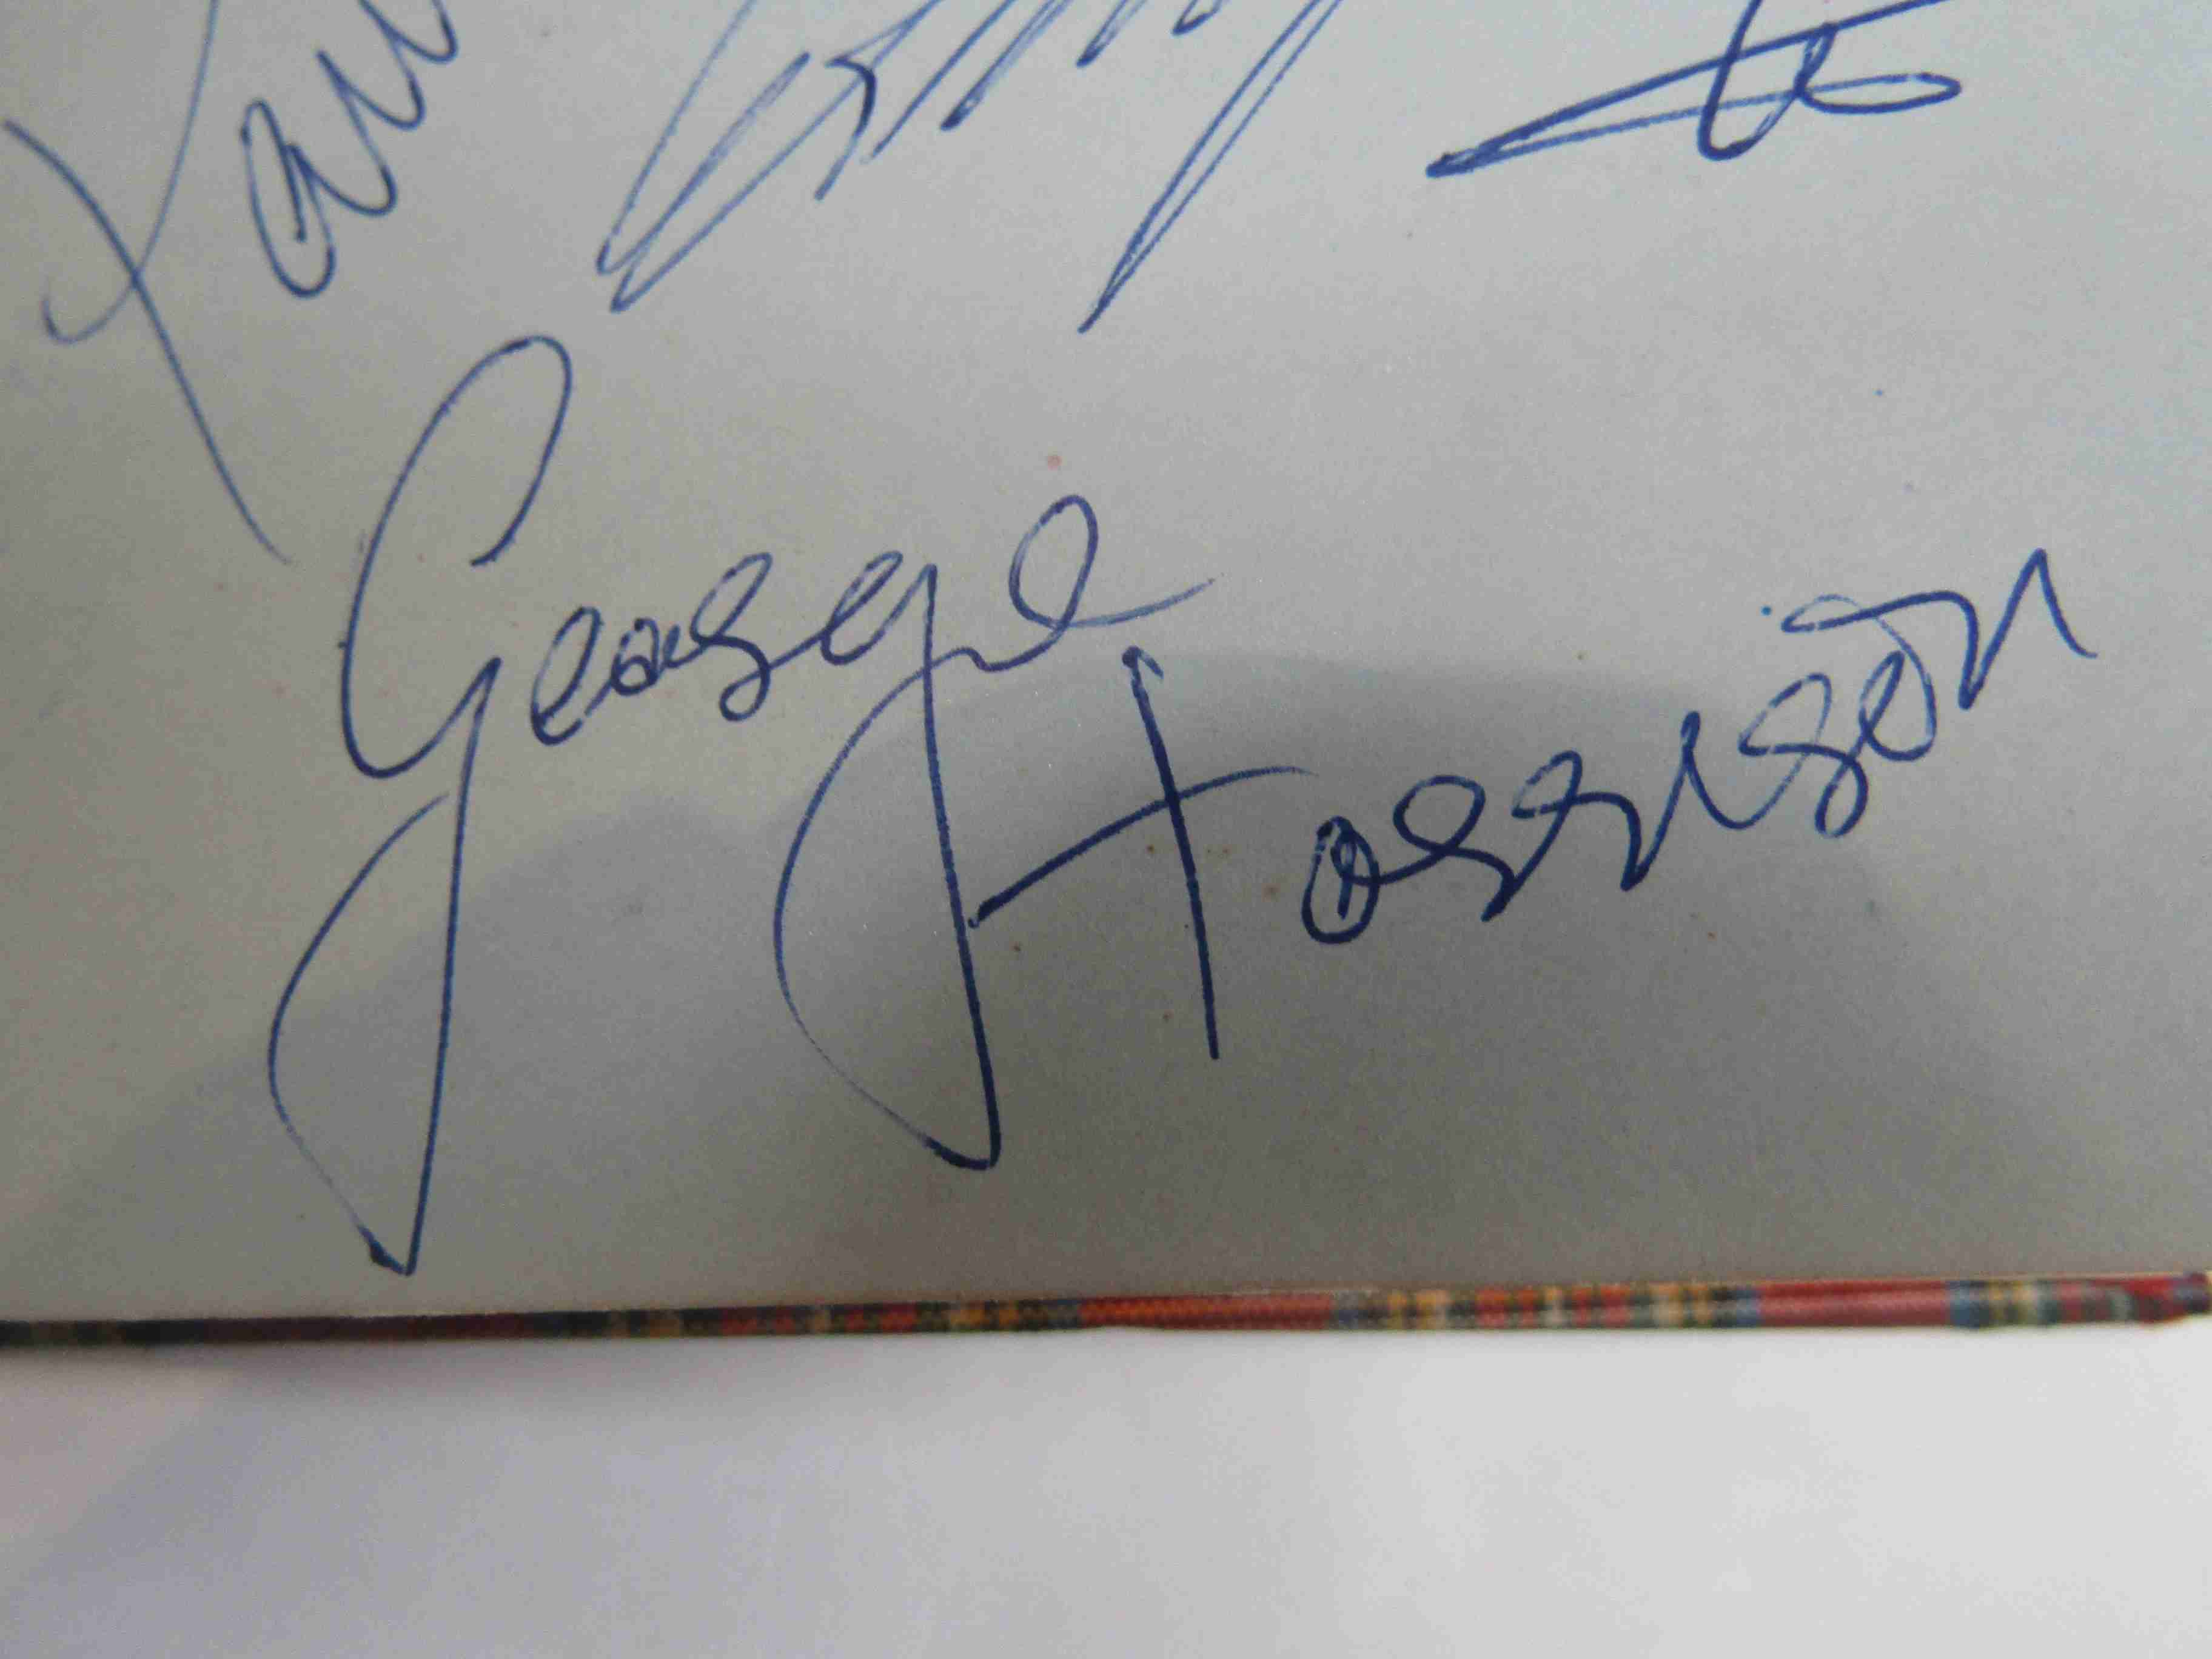 Two 1950s/60s autograph books containing autographs by Benny Hill, Honor Blackman, Barbara Shelley, - Image 5 of 34